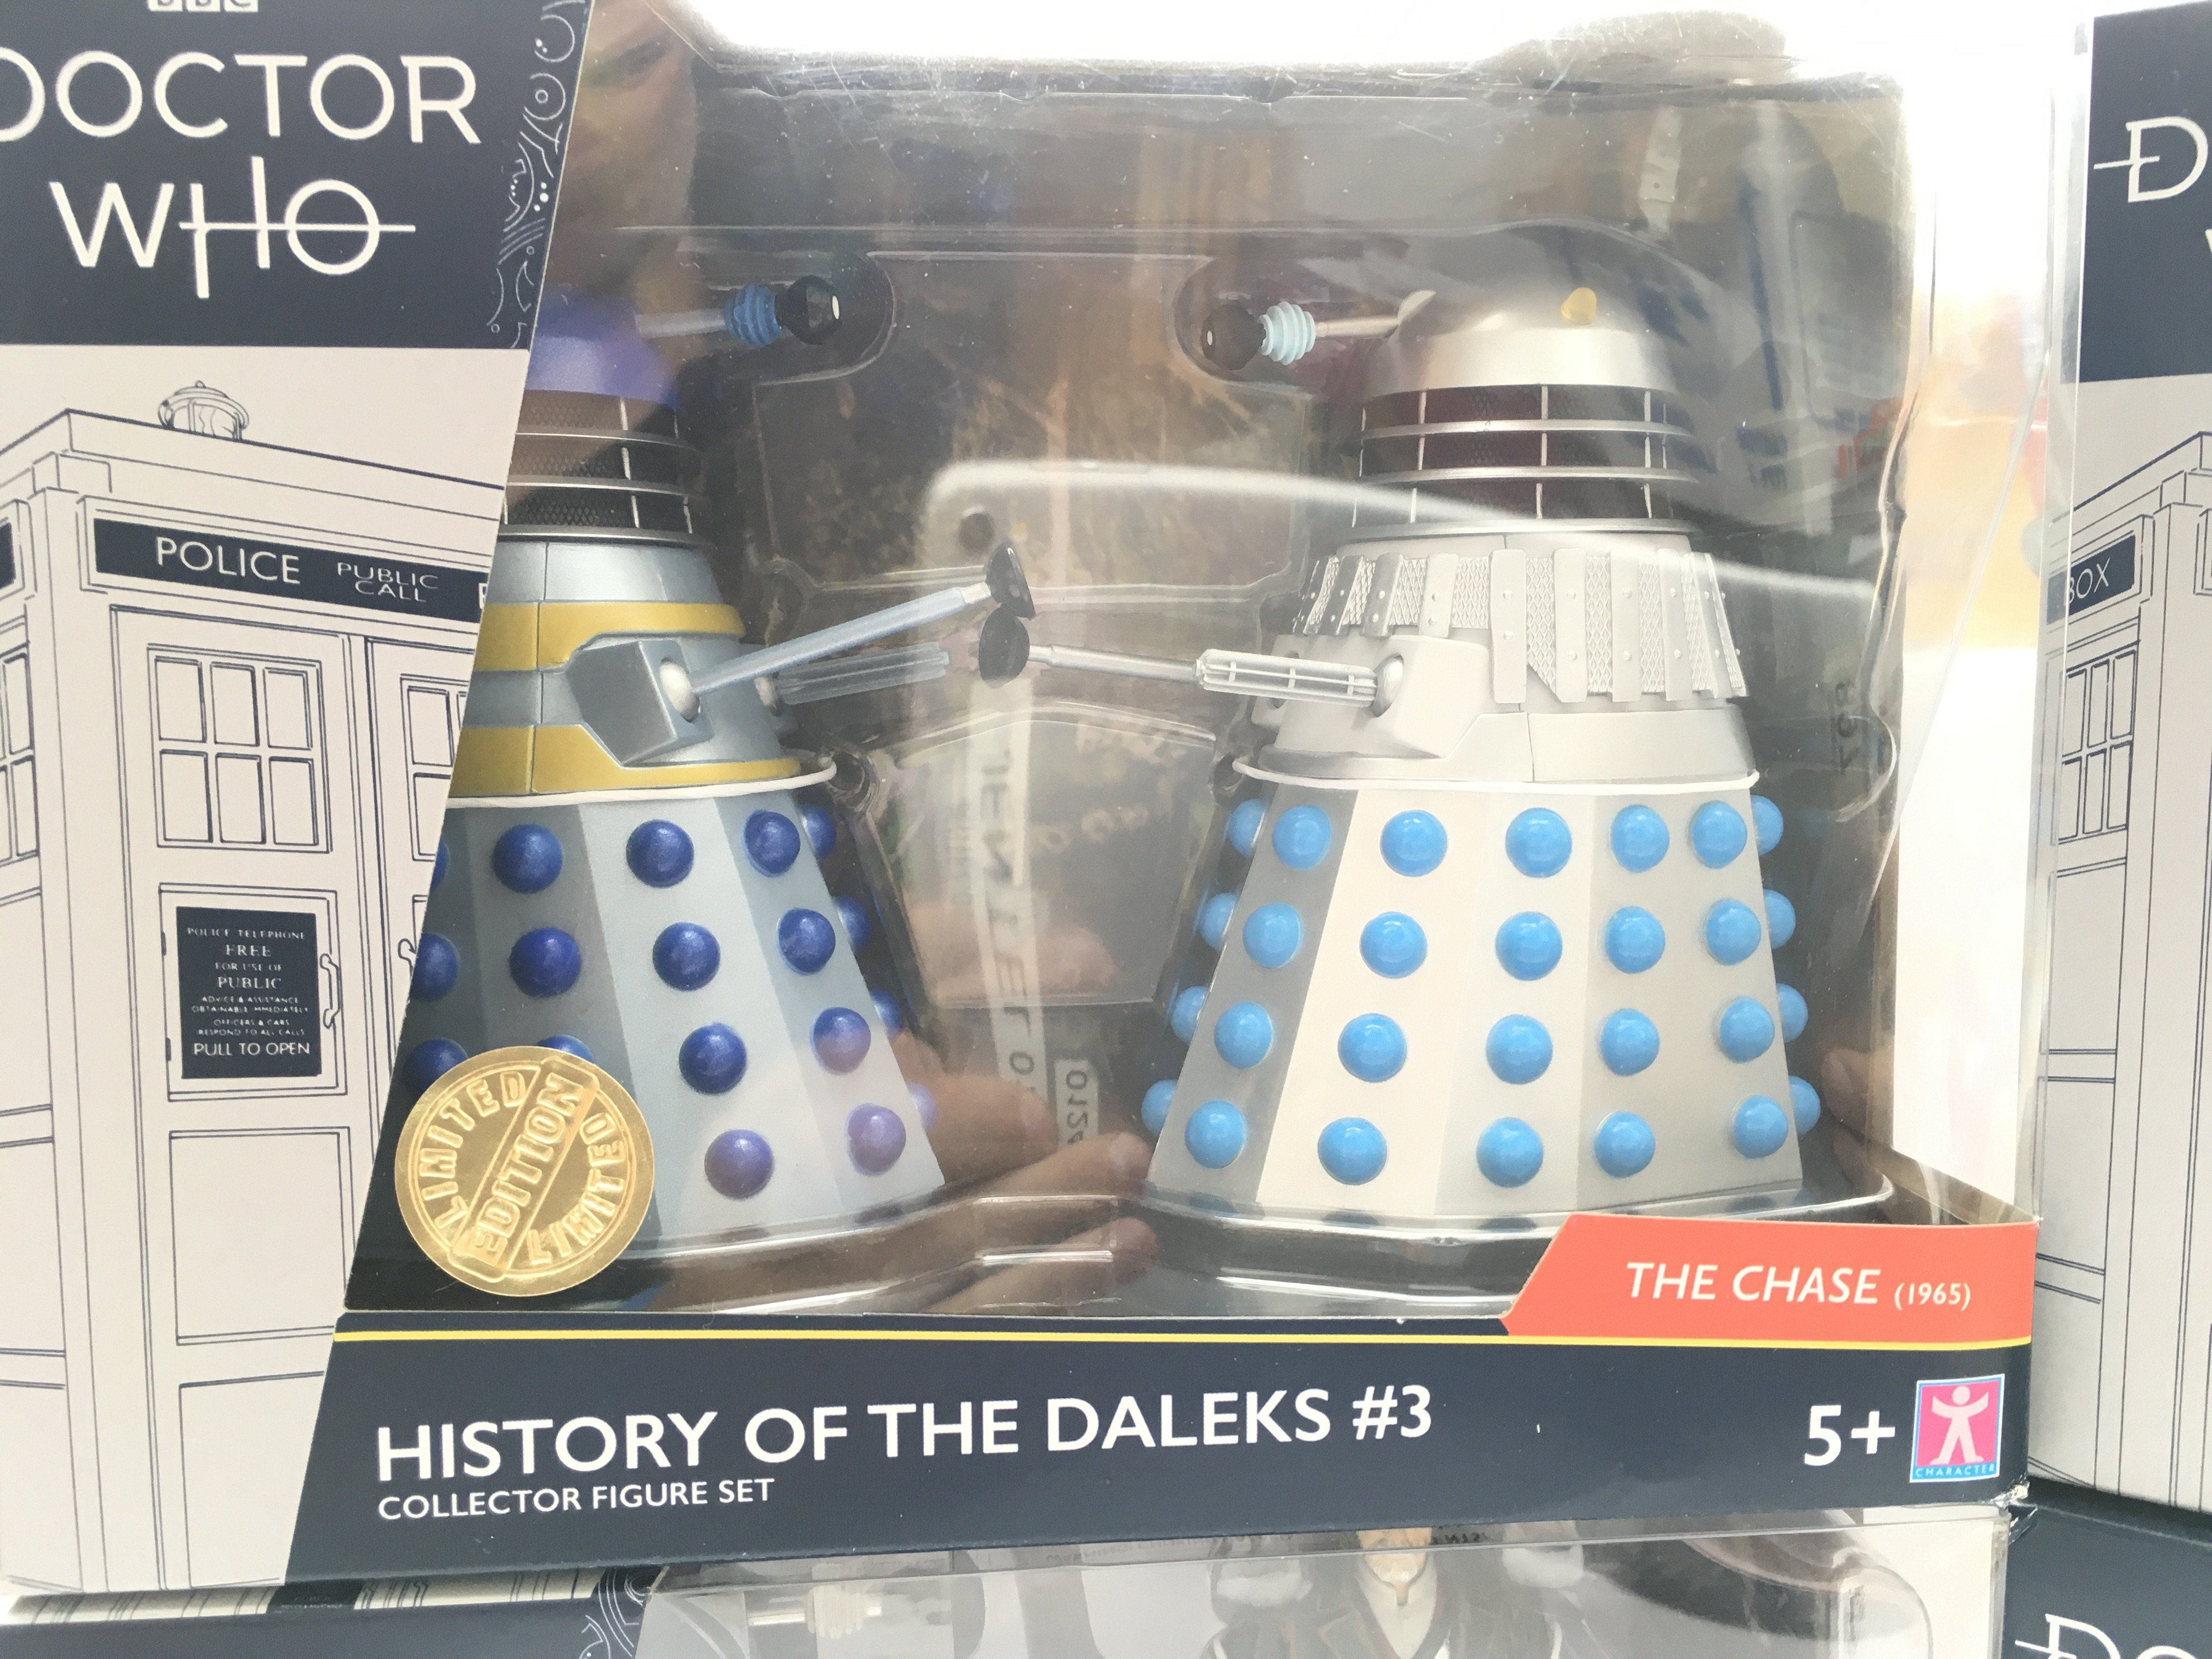 4 X Limited Edition Doctor Who Character Dalek Col - Image 5 of 5